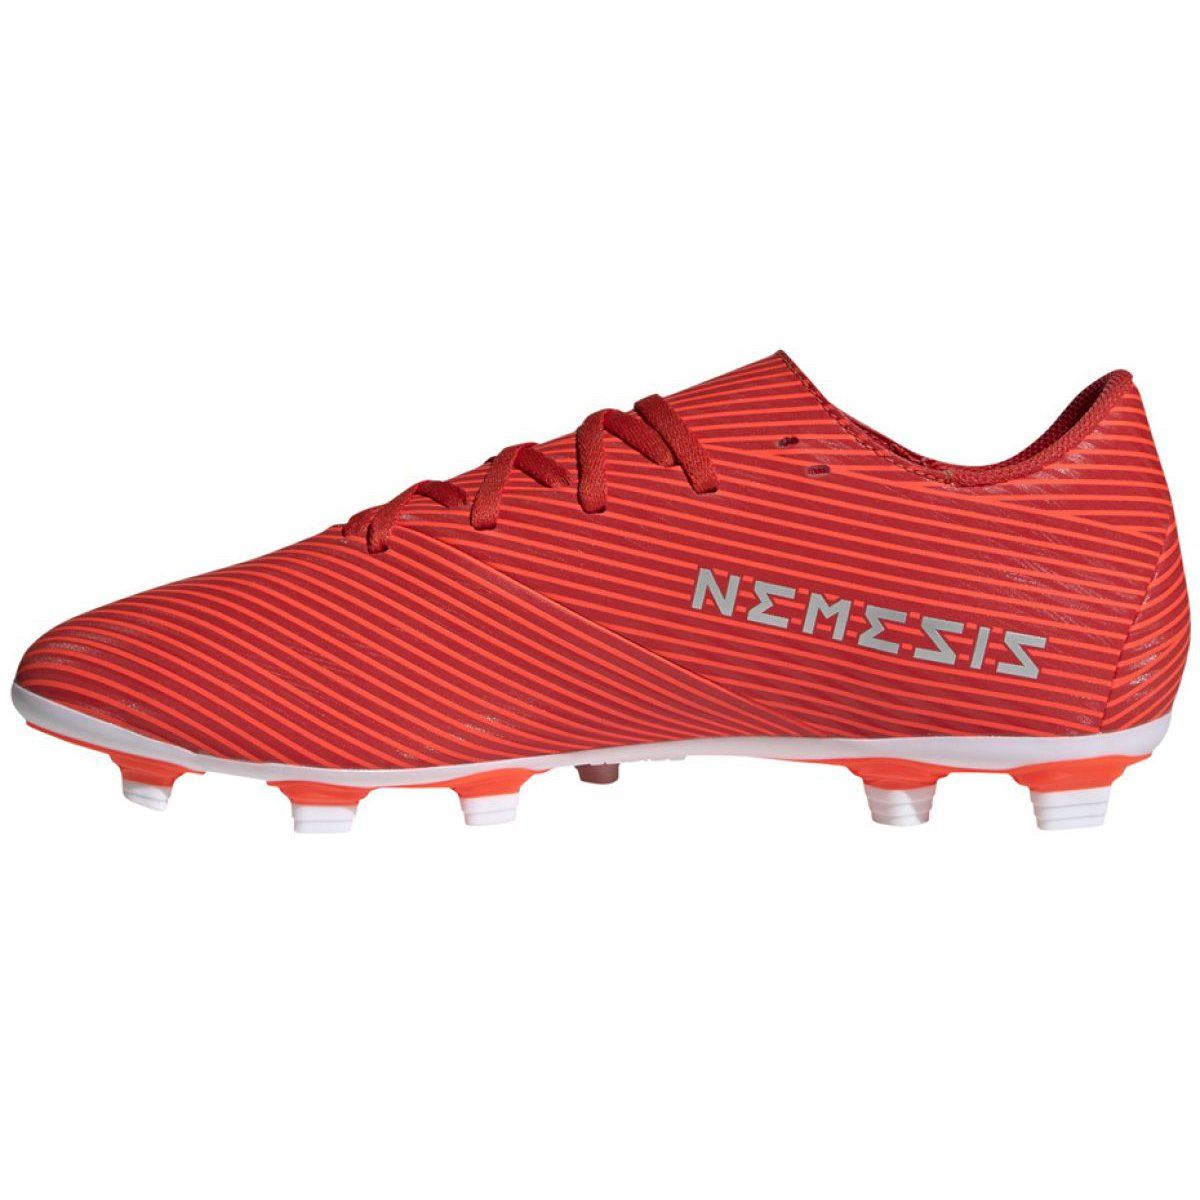 Football Boots Adidas Nemeziz 19 4 Fxg M F34393 Red Red In 2020 Football Boots Best Soccer Cleats Football Shoes